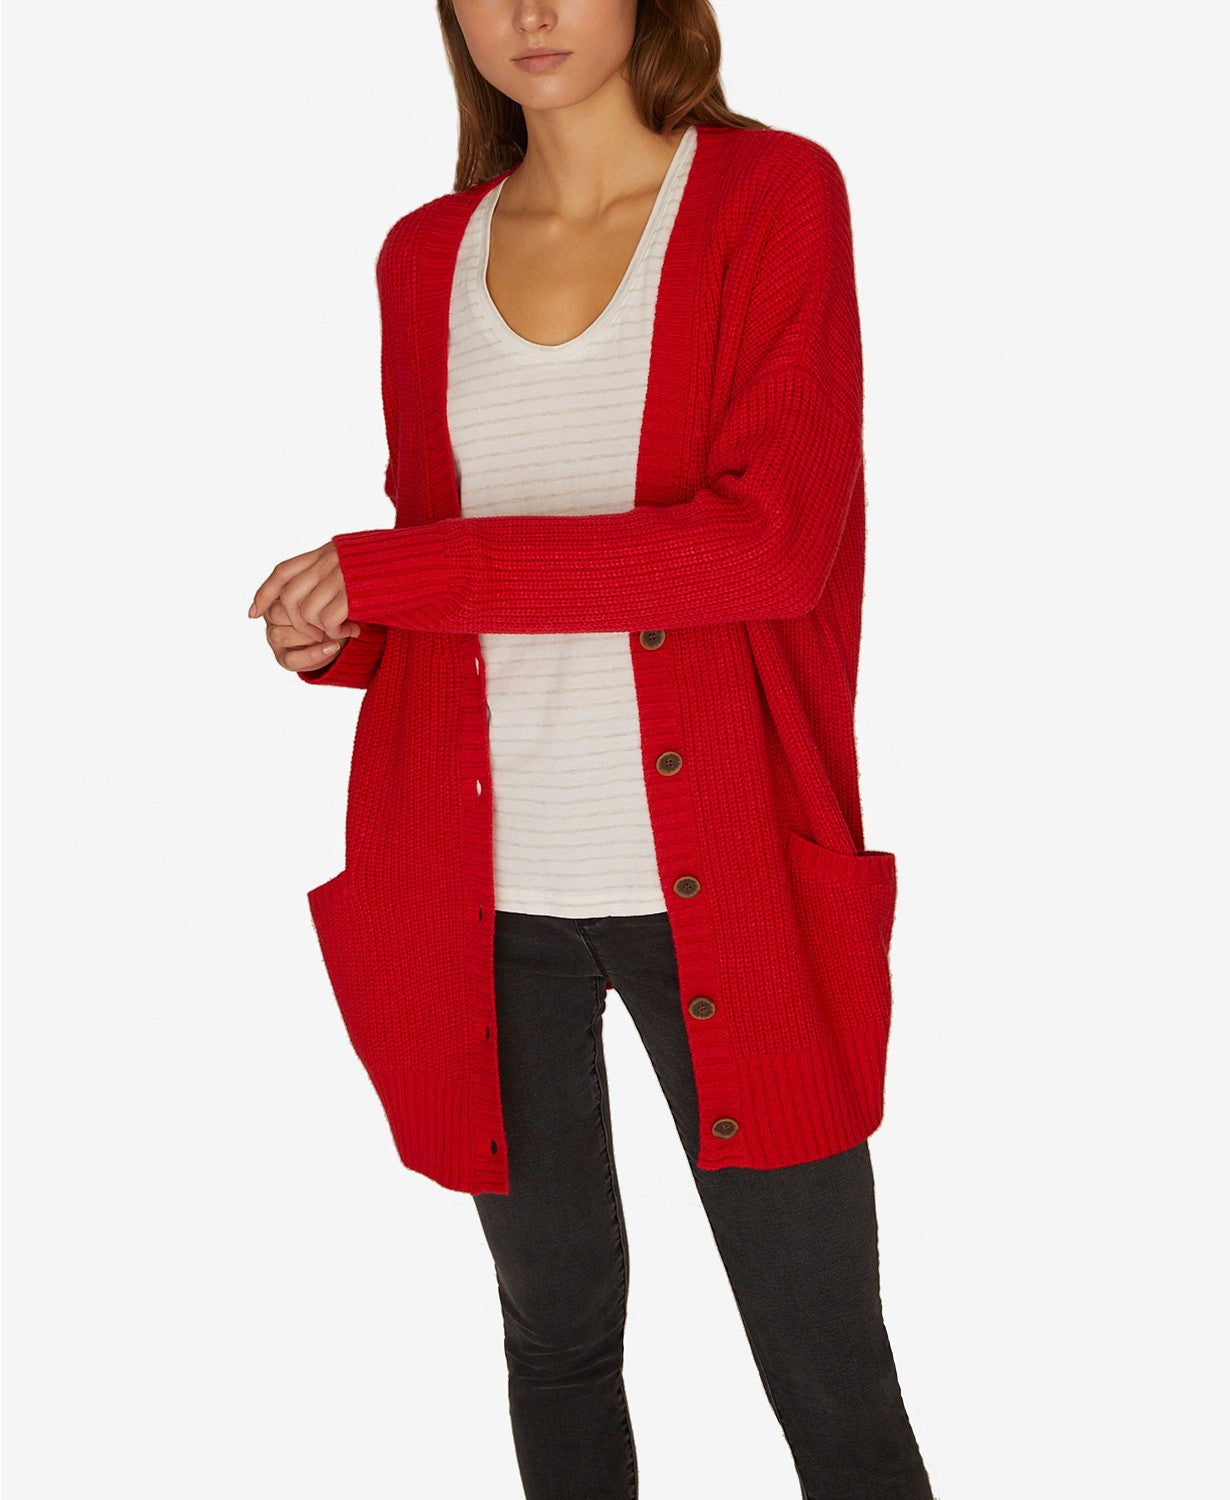 Sanctuary Womens Long MIDI Cardigan Sweater